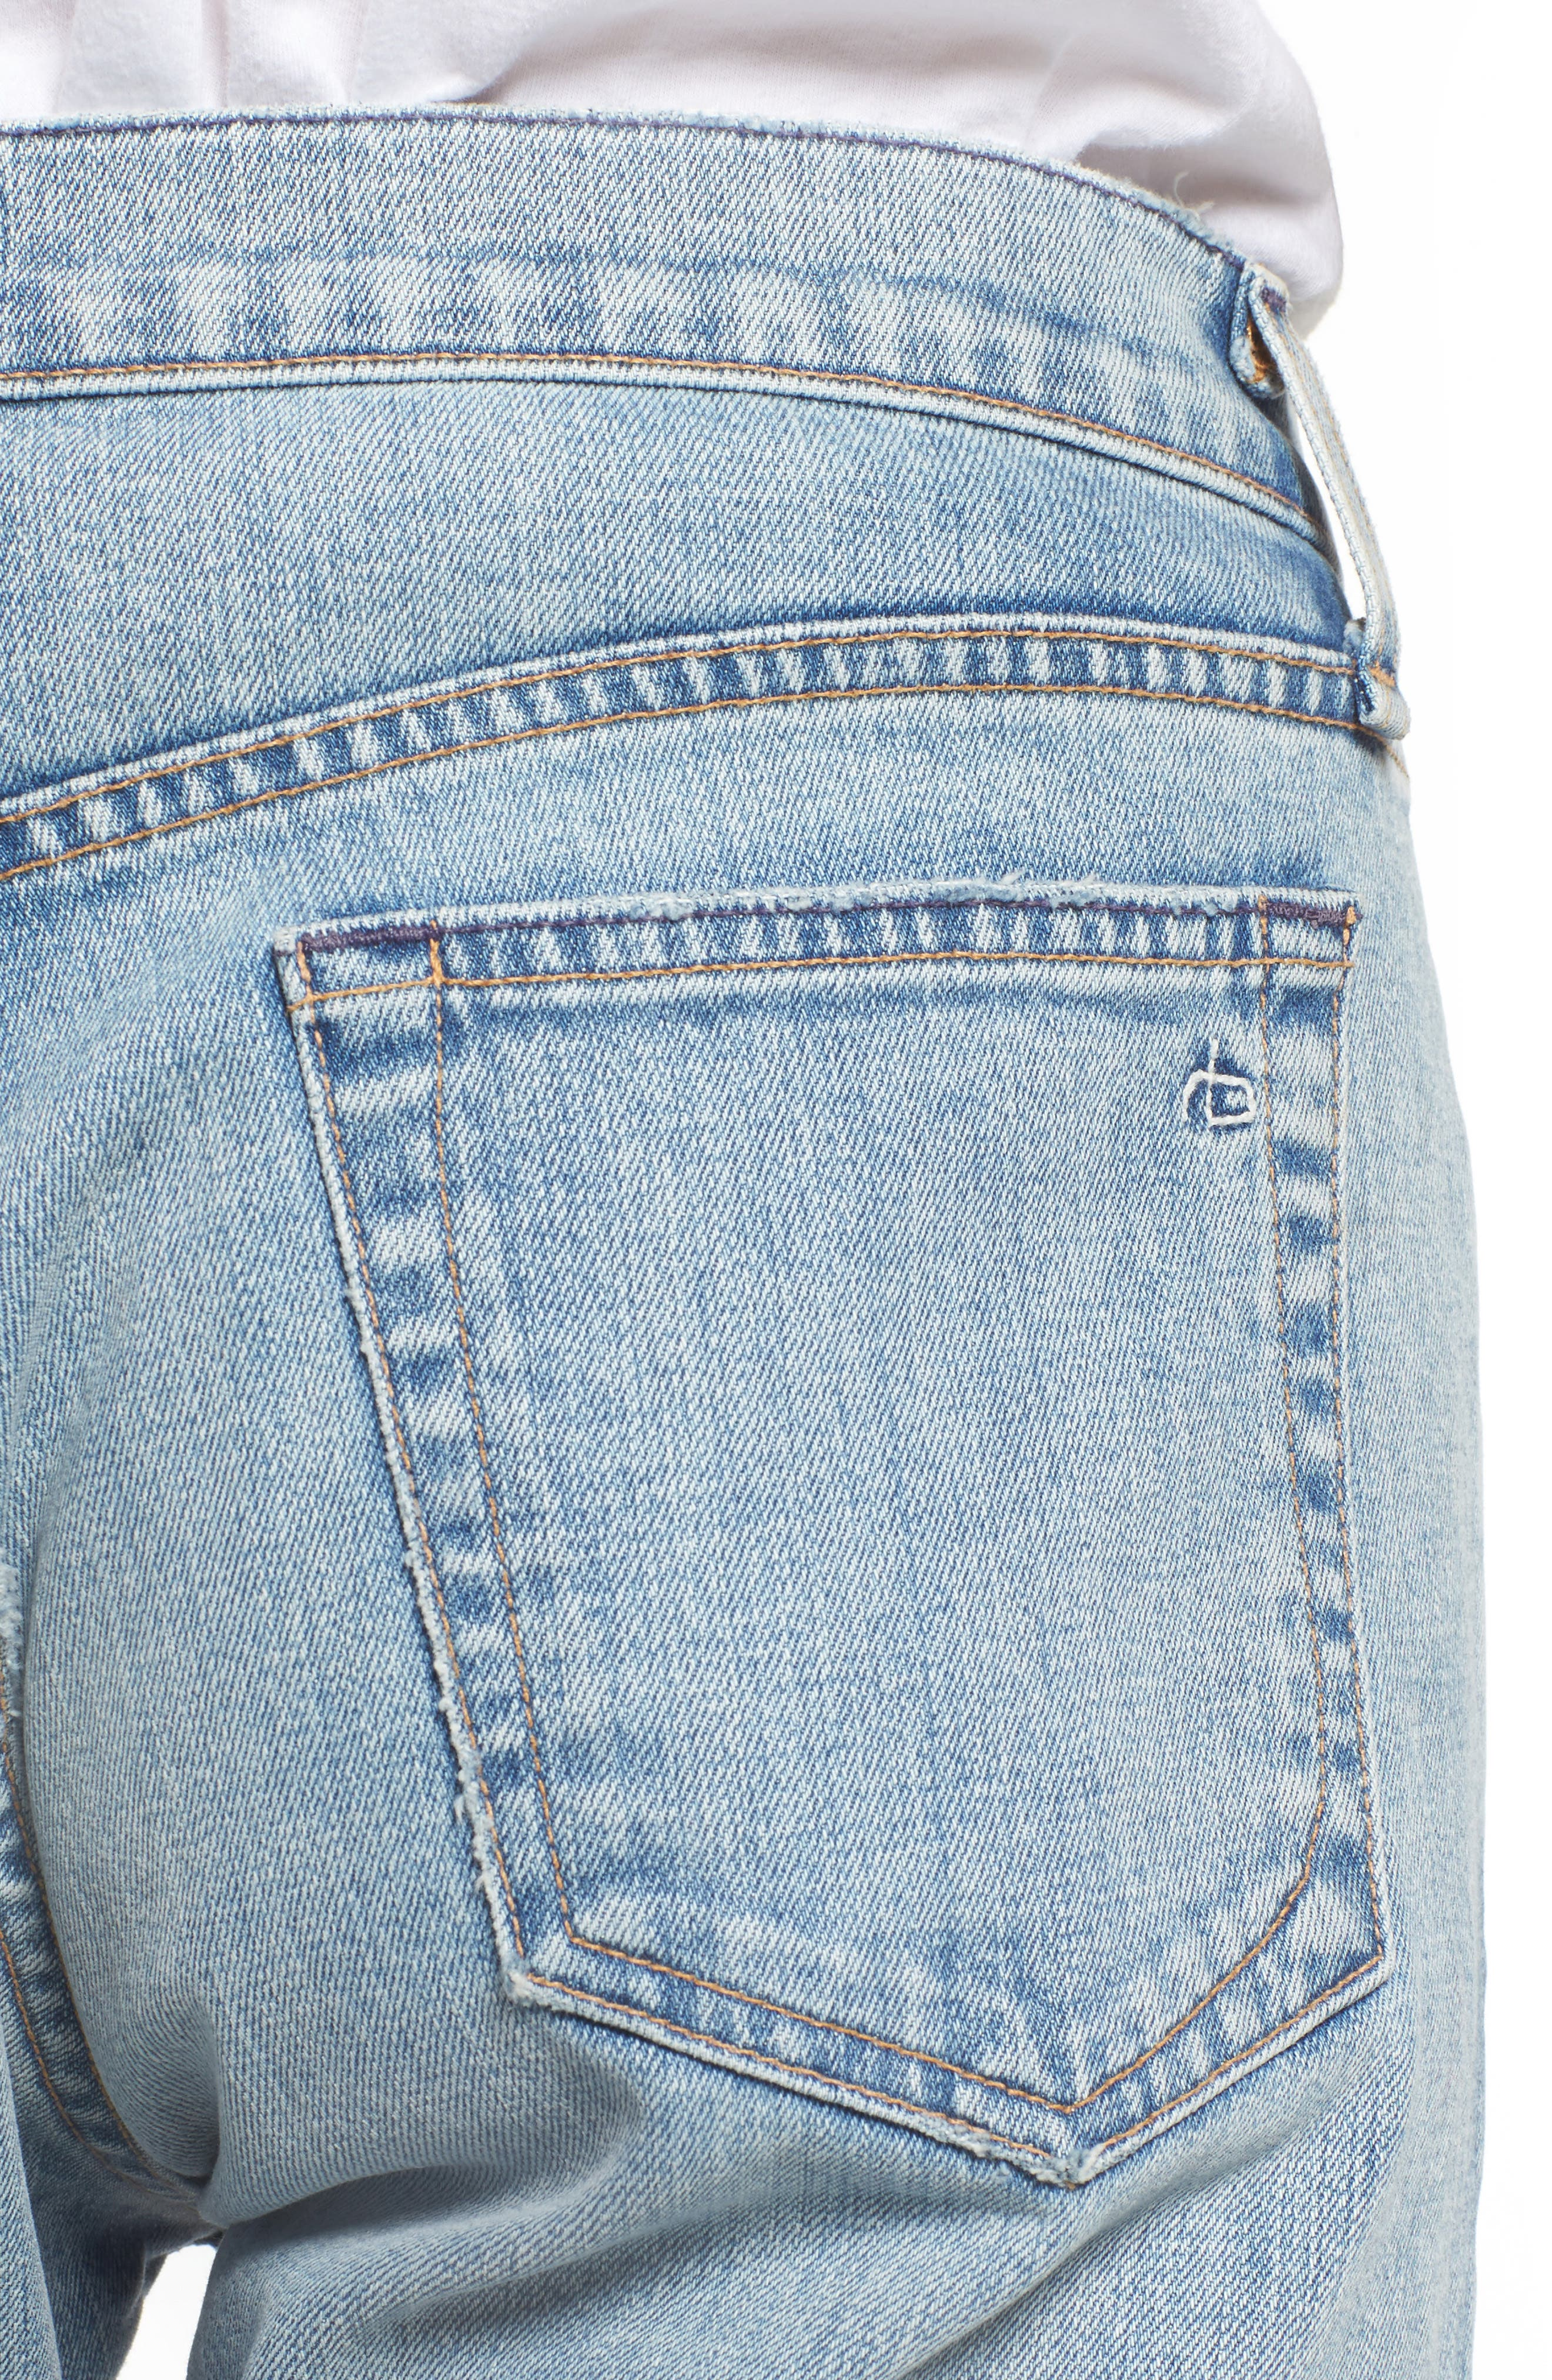 Fit 1 Skinny Fit Jeans,                             Alternate thumbnail 4, color,                             Jameson With Holes